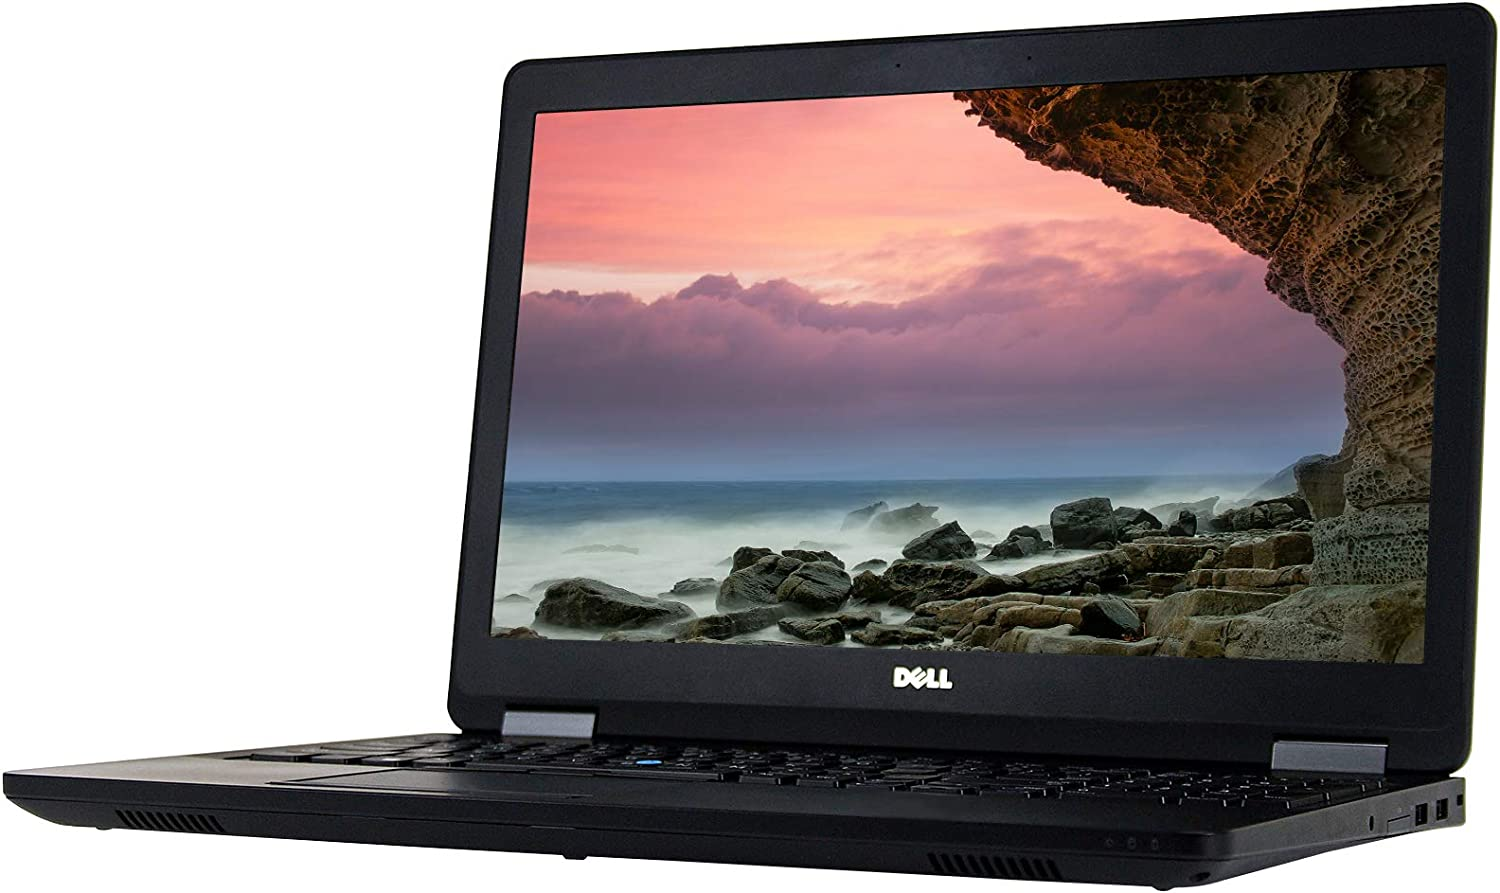 DELL Latitude E5570 15.6in Laptop, Core i5-6300U 2.4GHz, 8GB Ram, 180GB SSD, Windows 10 Pro 64bit (Renewed)